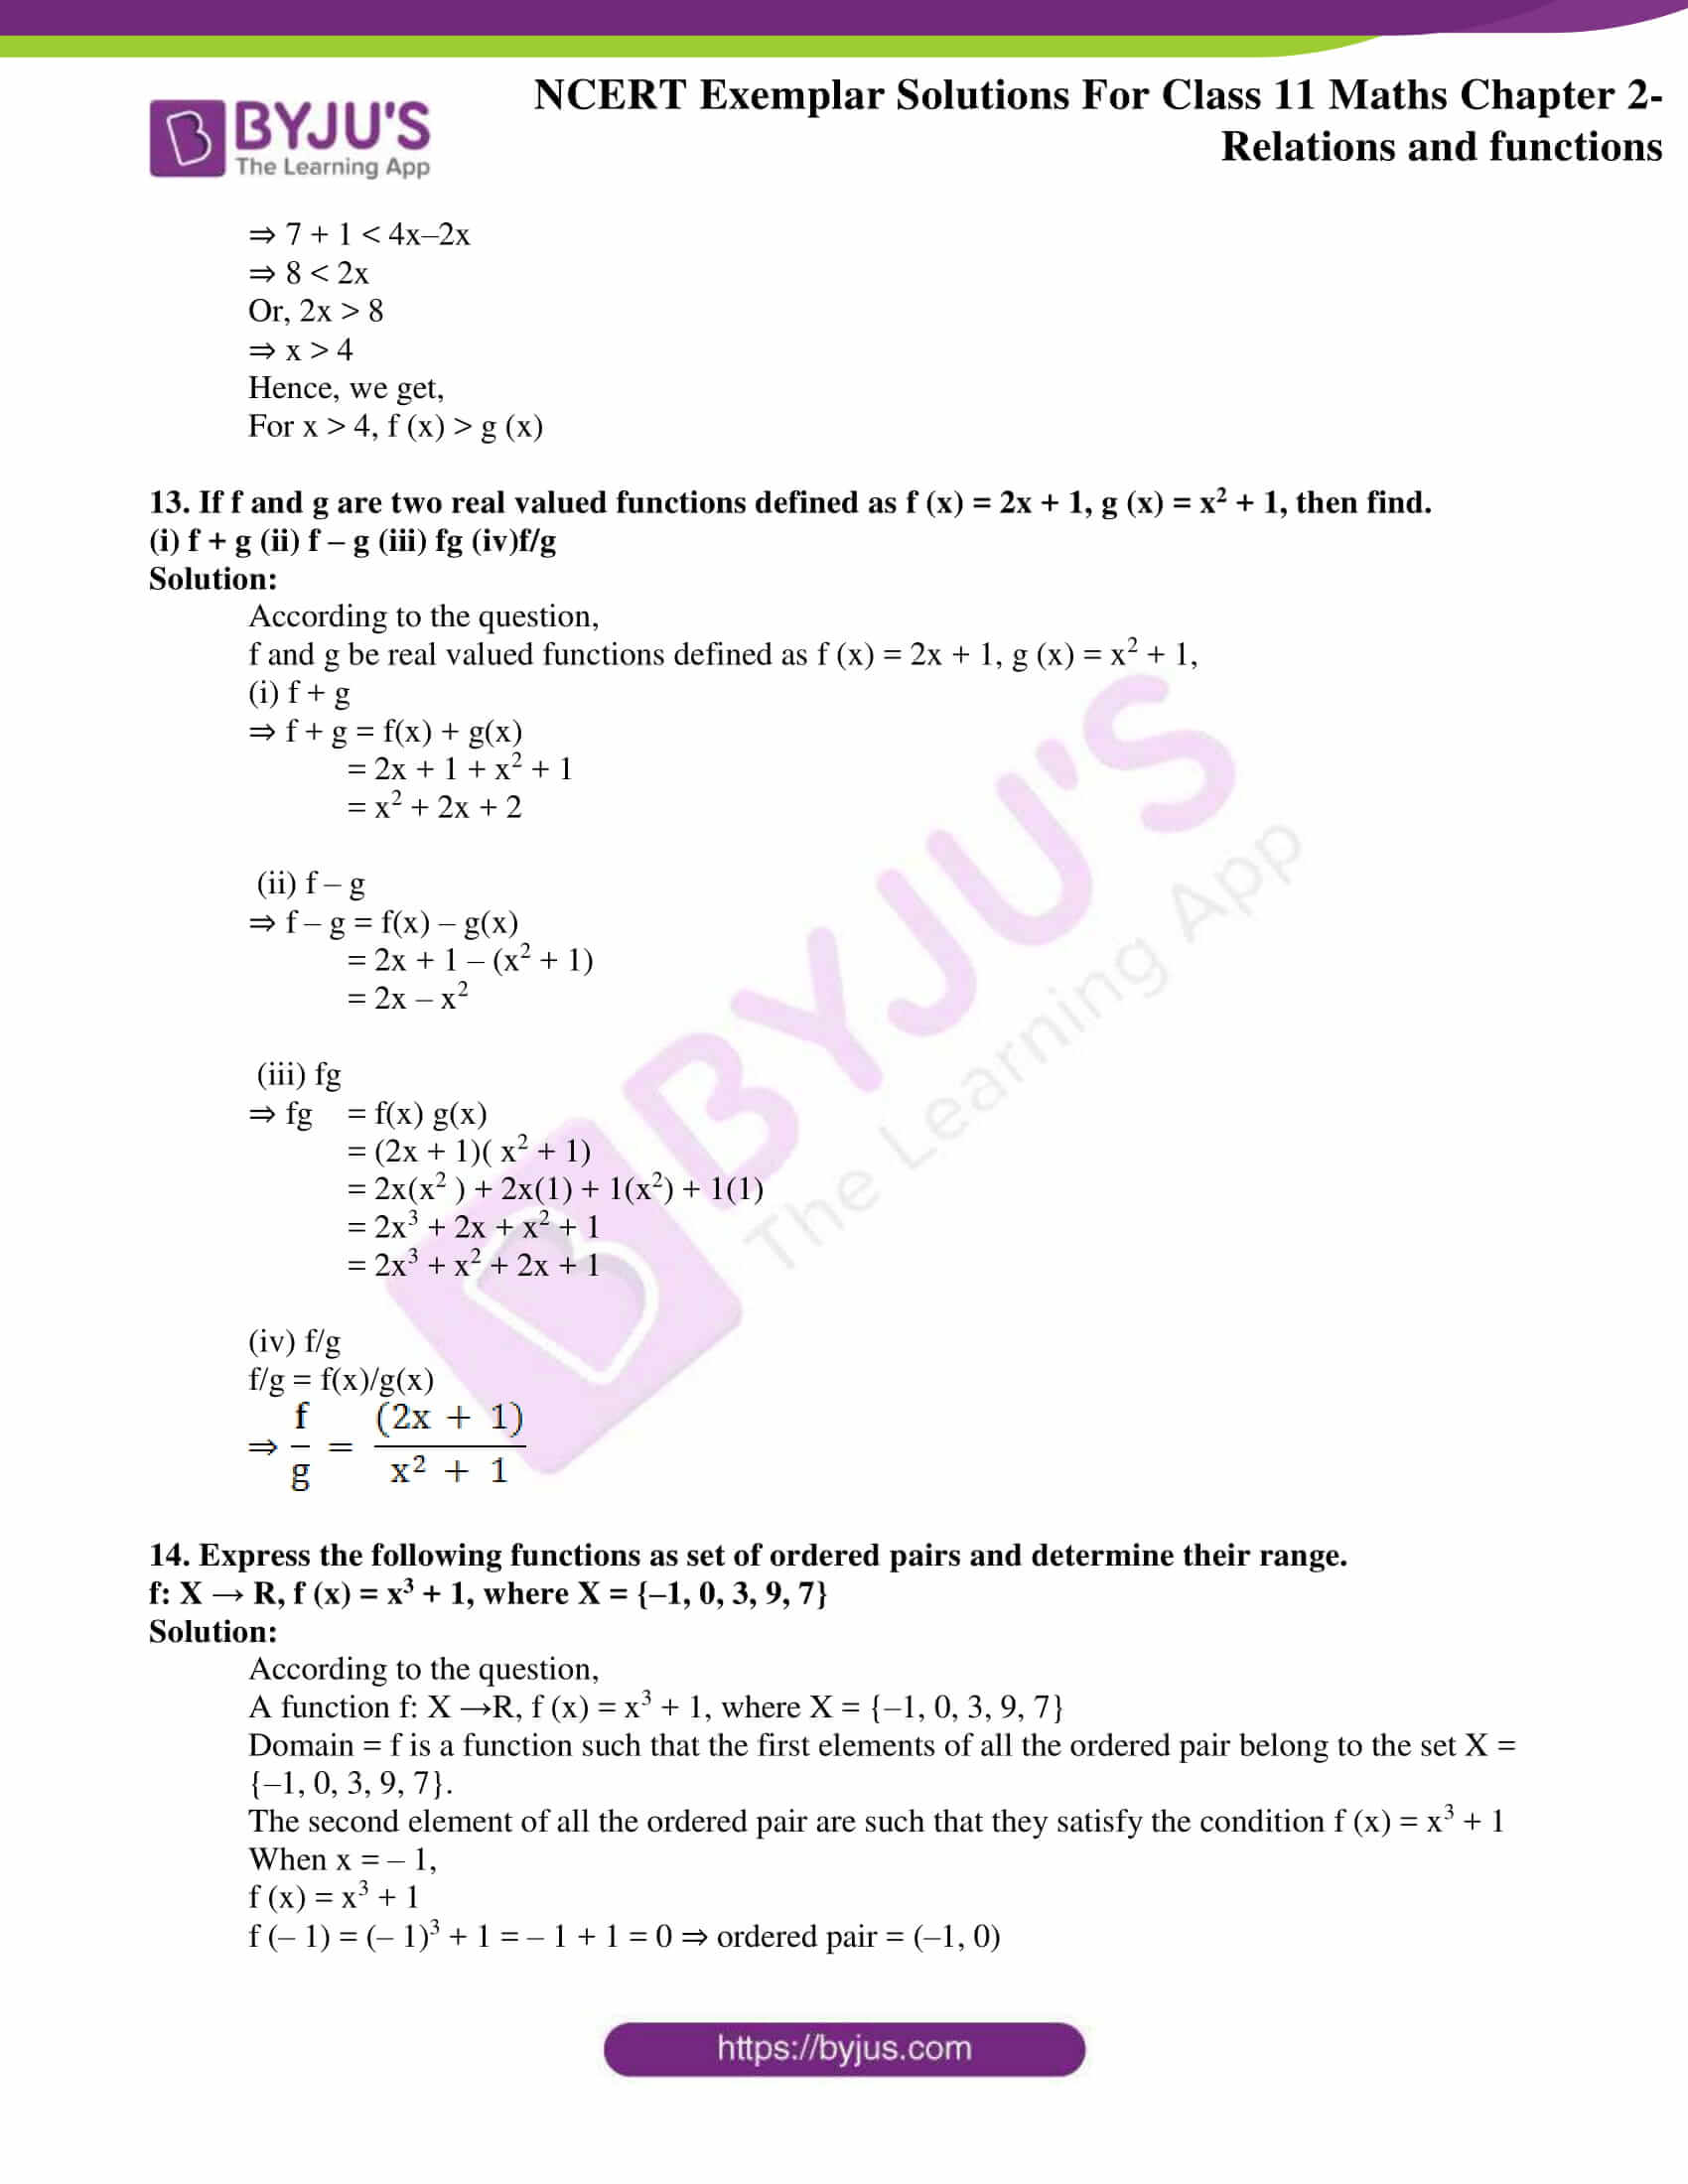 ncert exemplar solutions for class 11 maths chapter 2